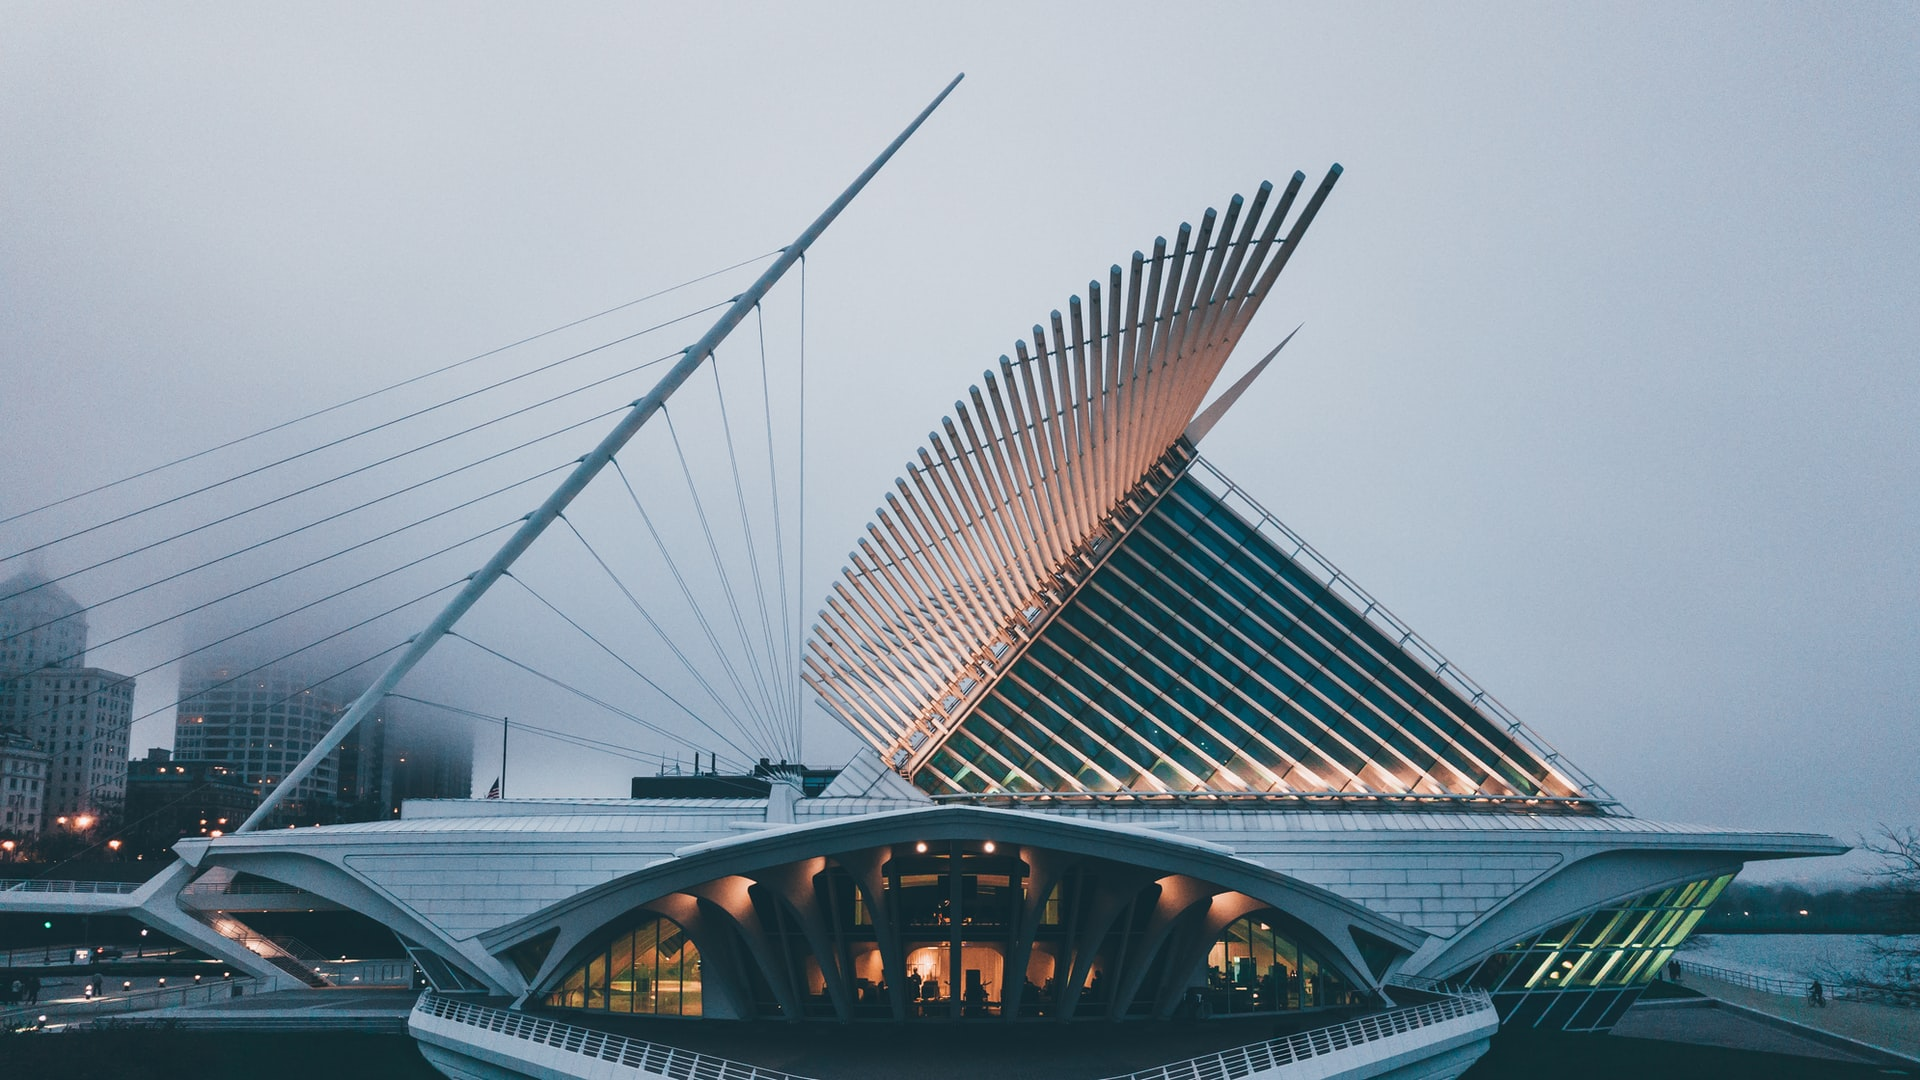 A lit up Milwaukee Art Museum on a foggy day